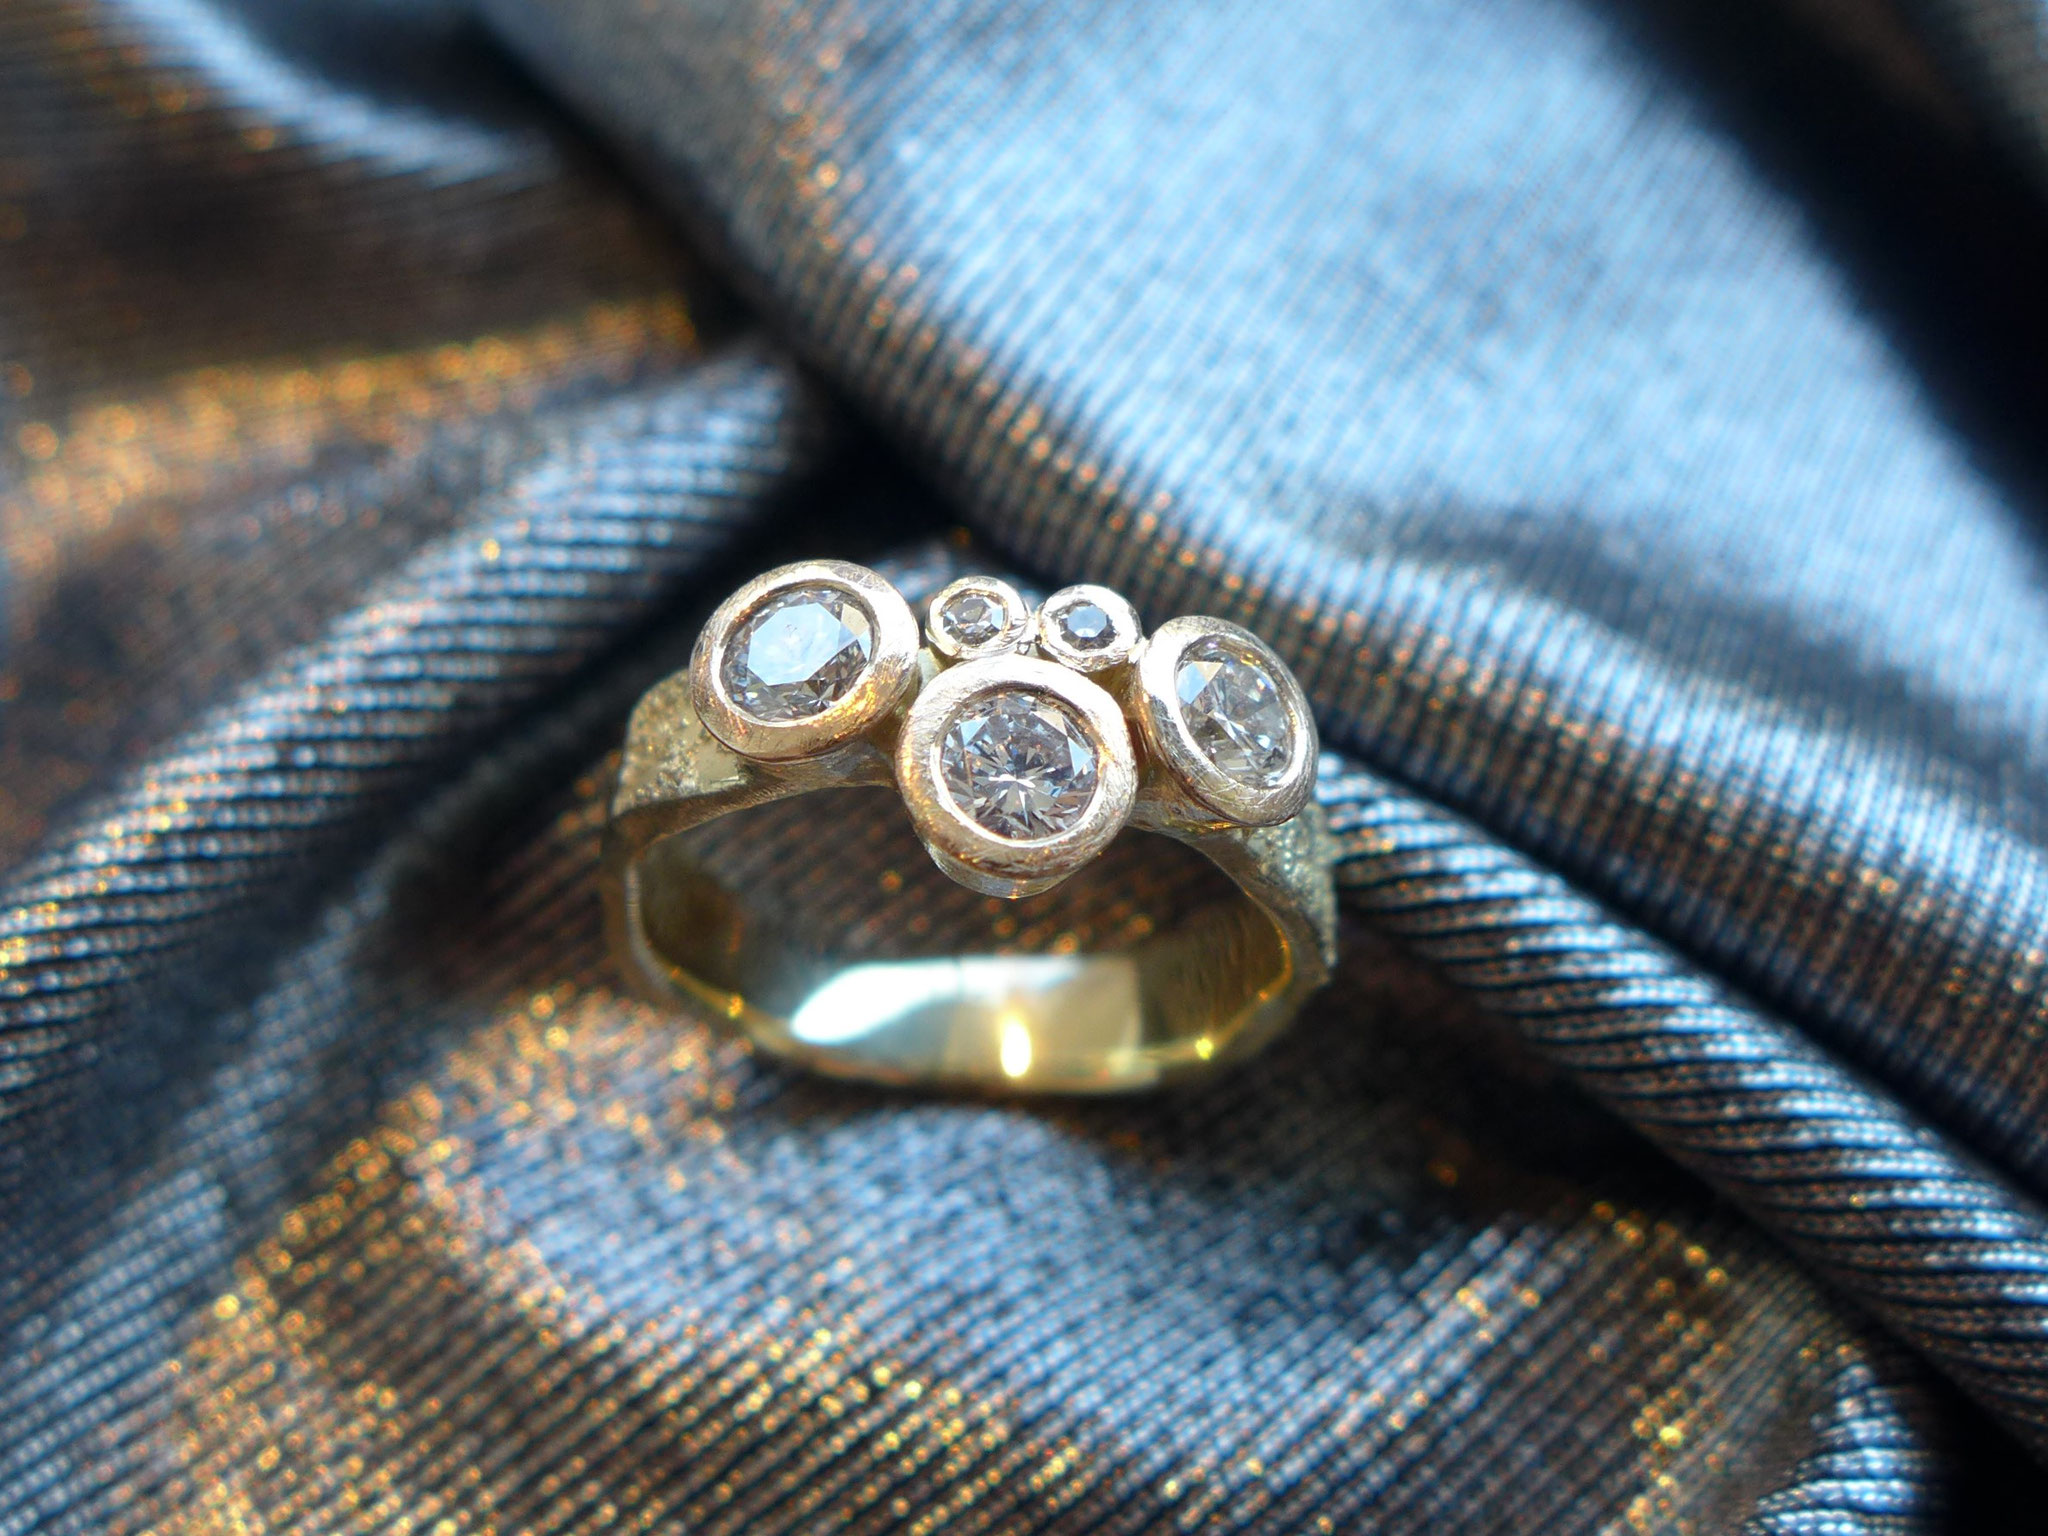 Ring, 14k gold with diamonds